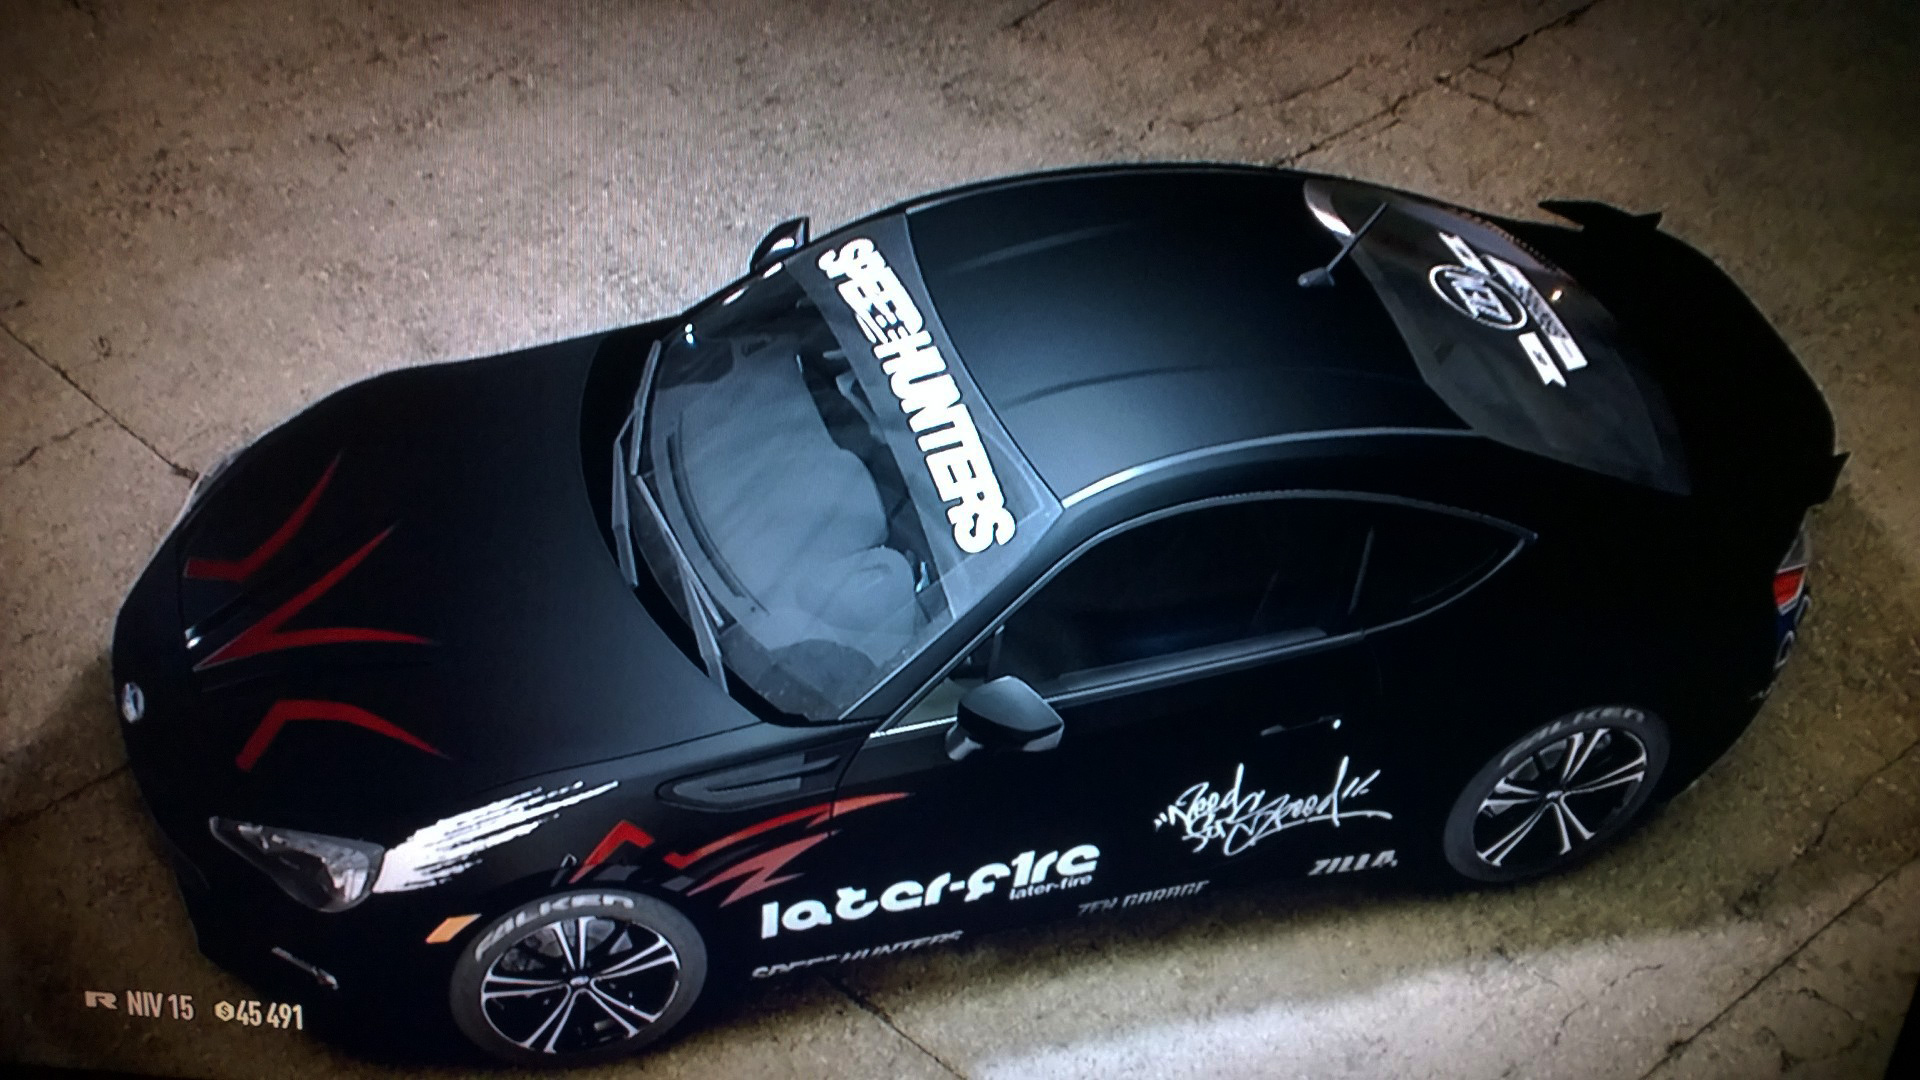 Need for Speed - screen photo - BRZ - custom by nomadelj - NFS car - toit / top